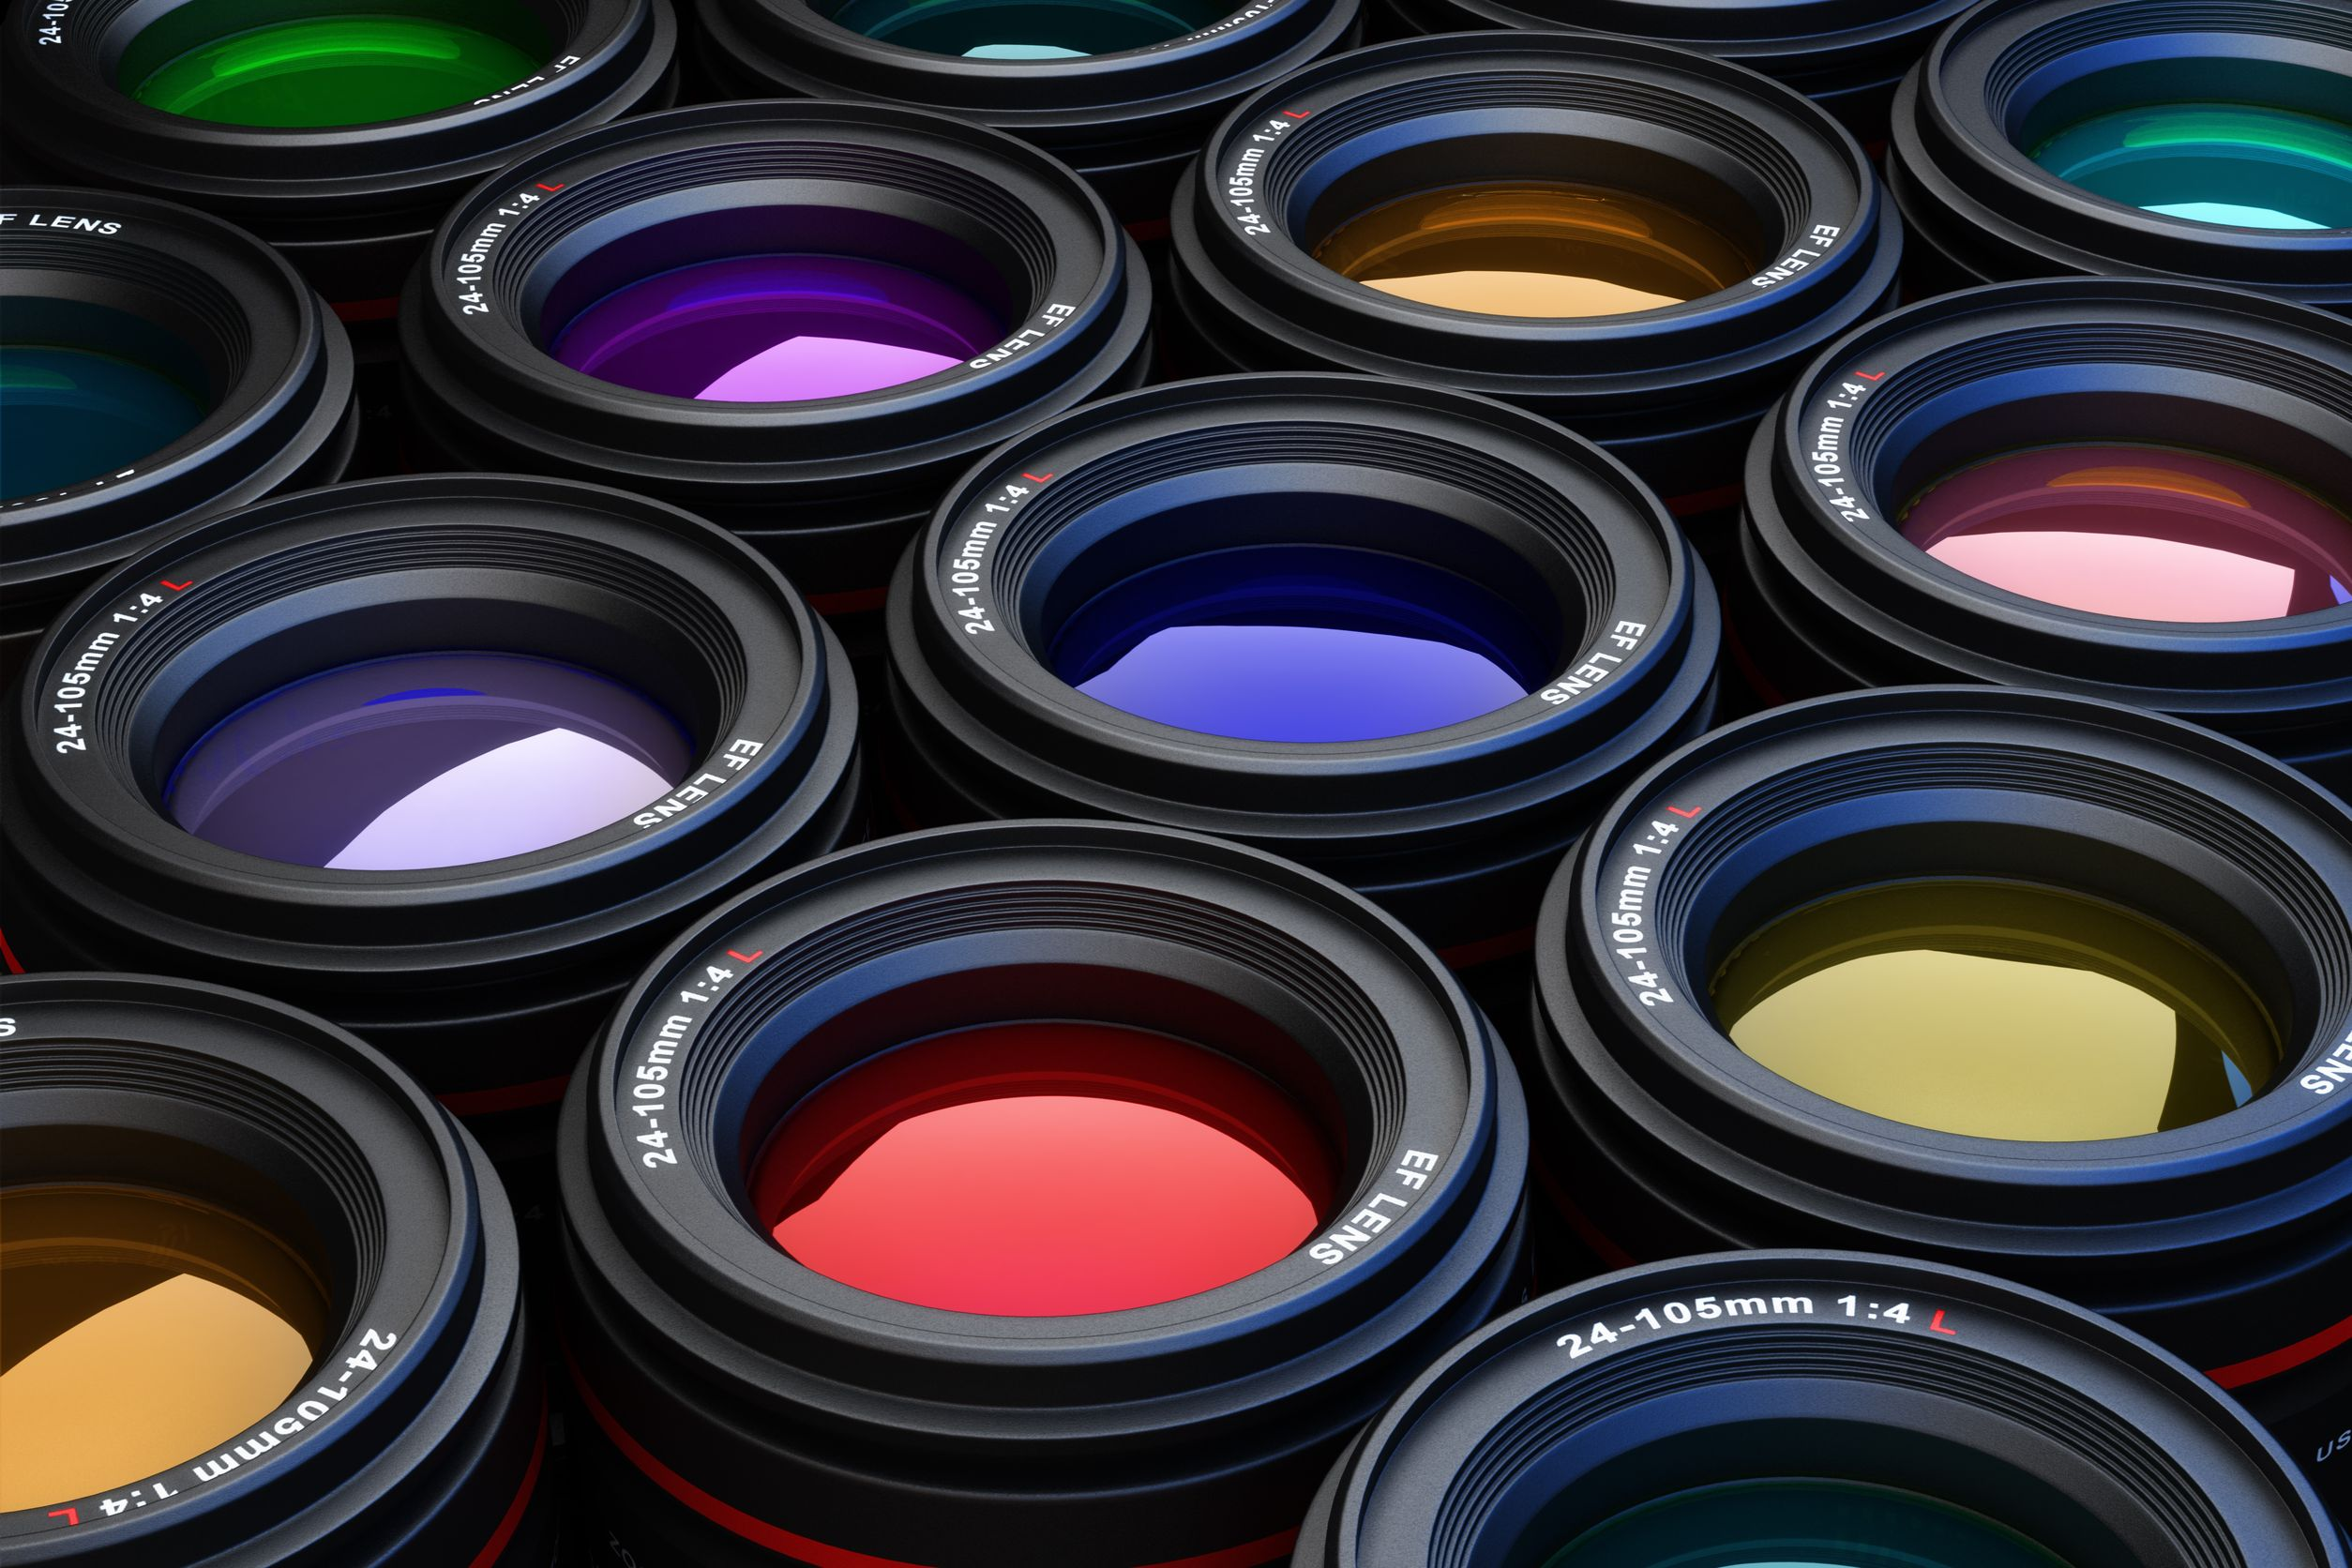 lenses in future smartphones could be over 80 times